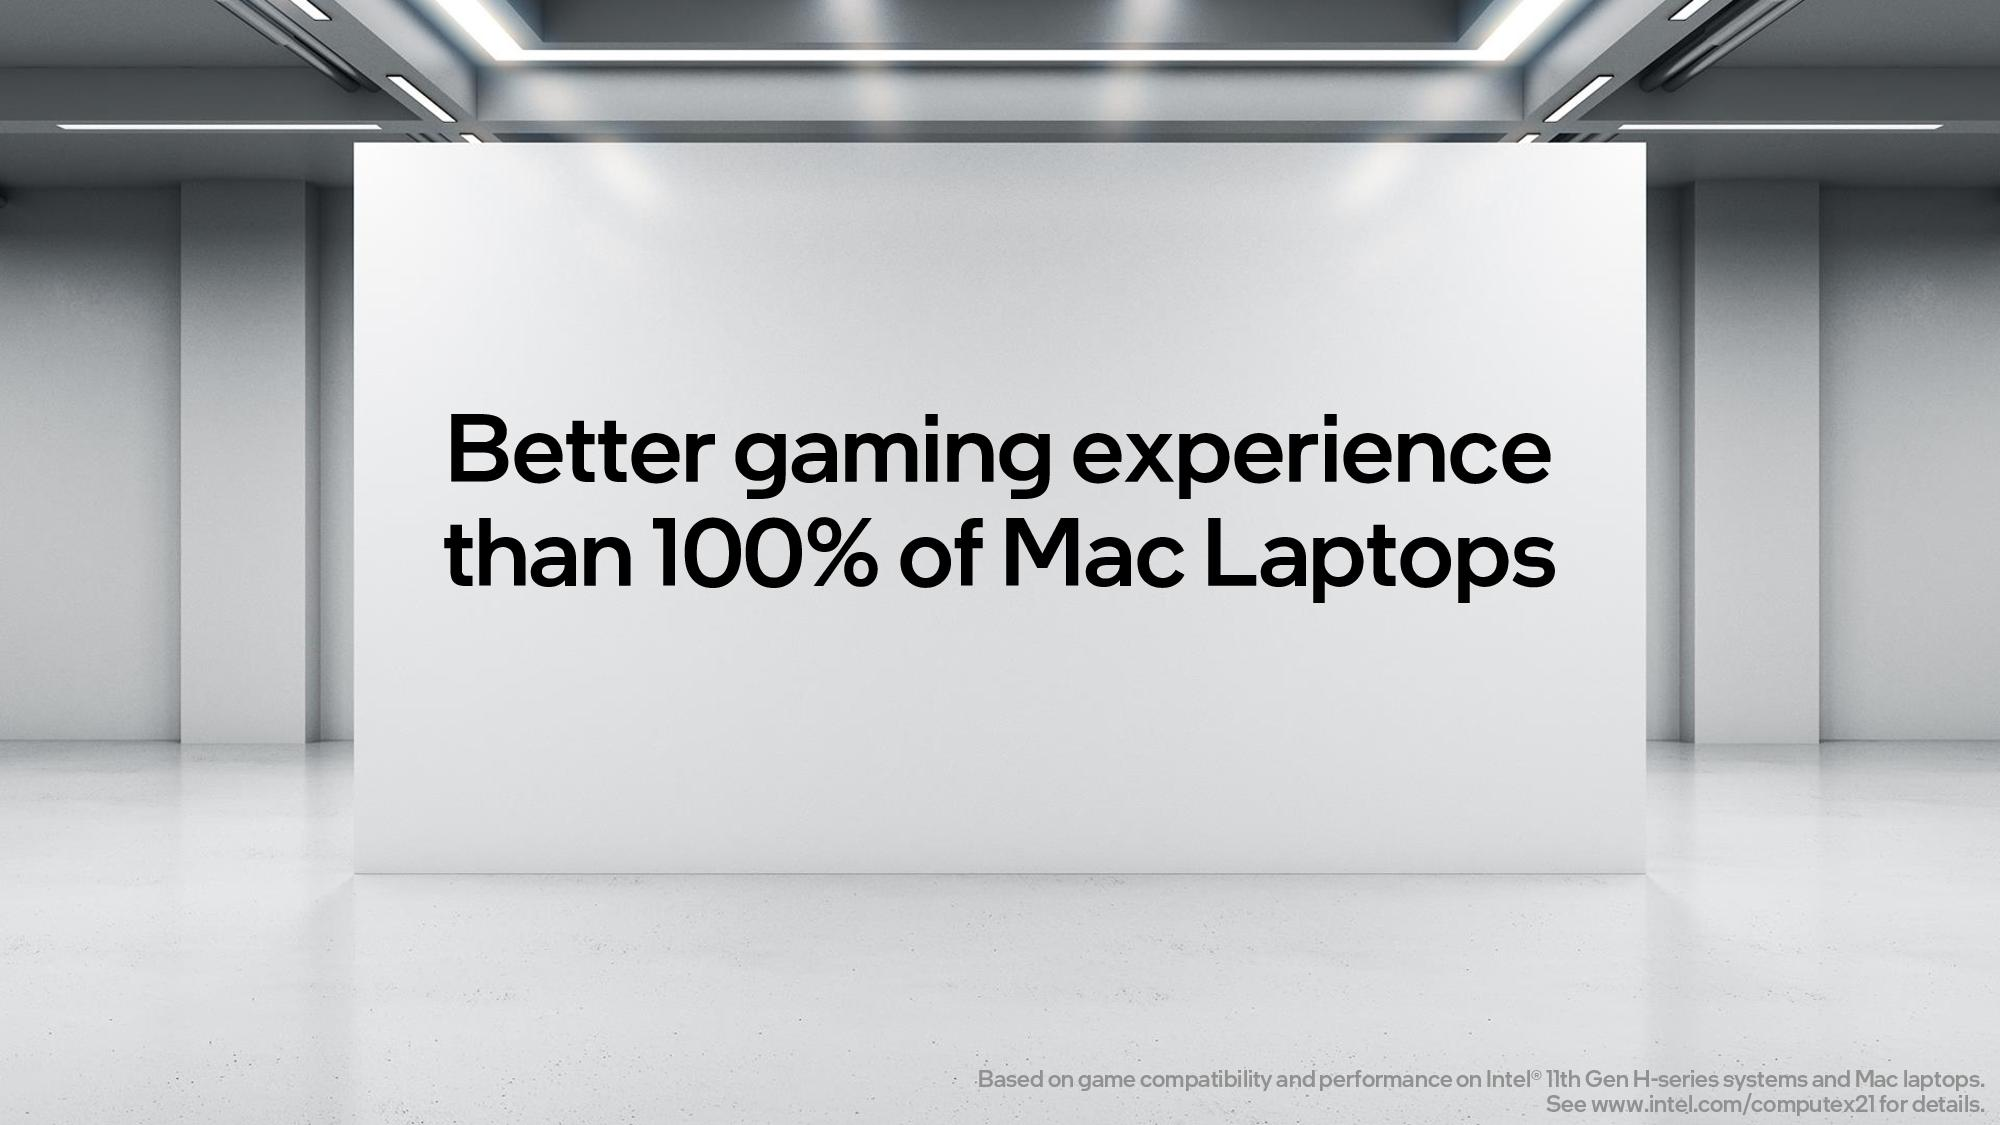 Intel Provides Better Gaming Experience Than 100% Of Apple Mac Laptops